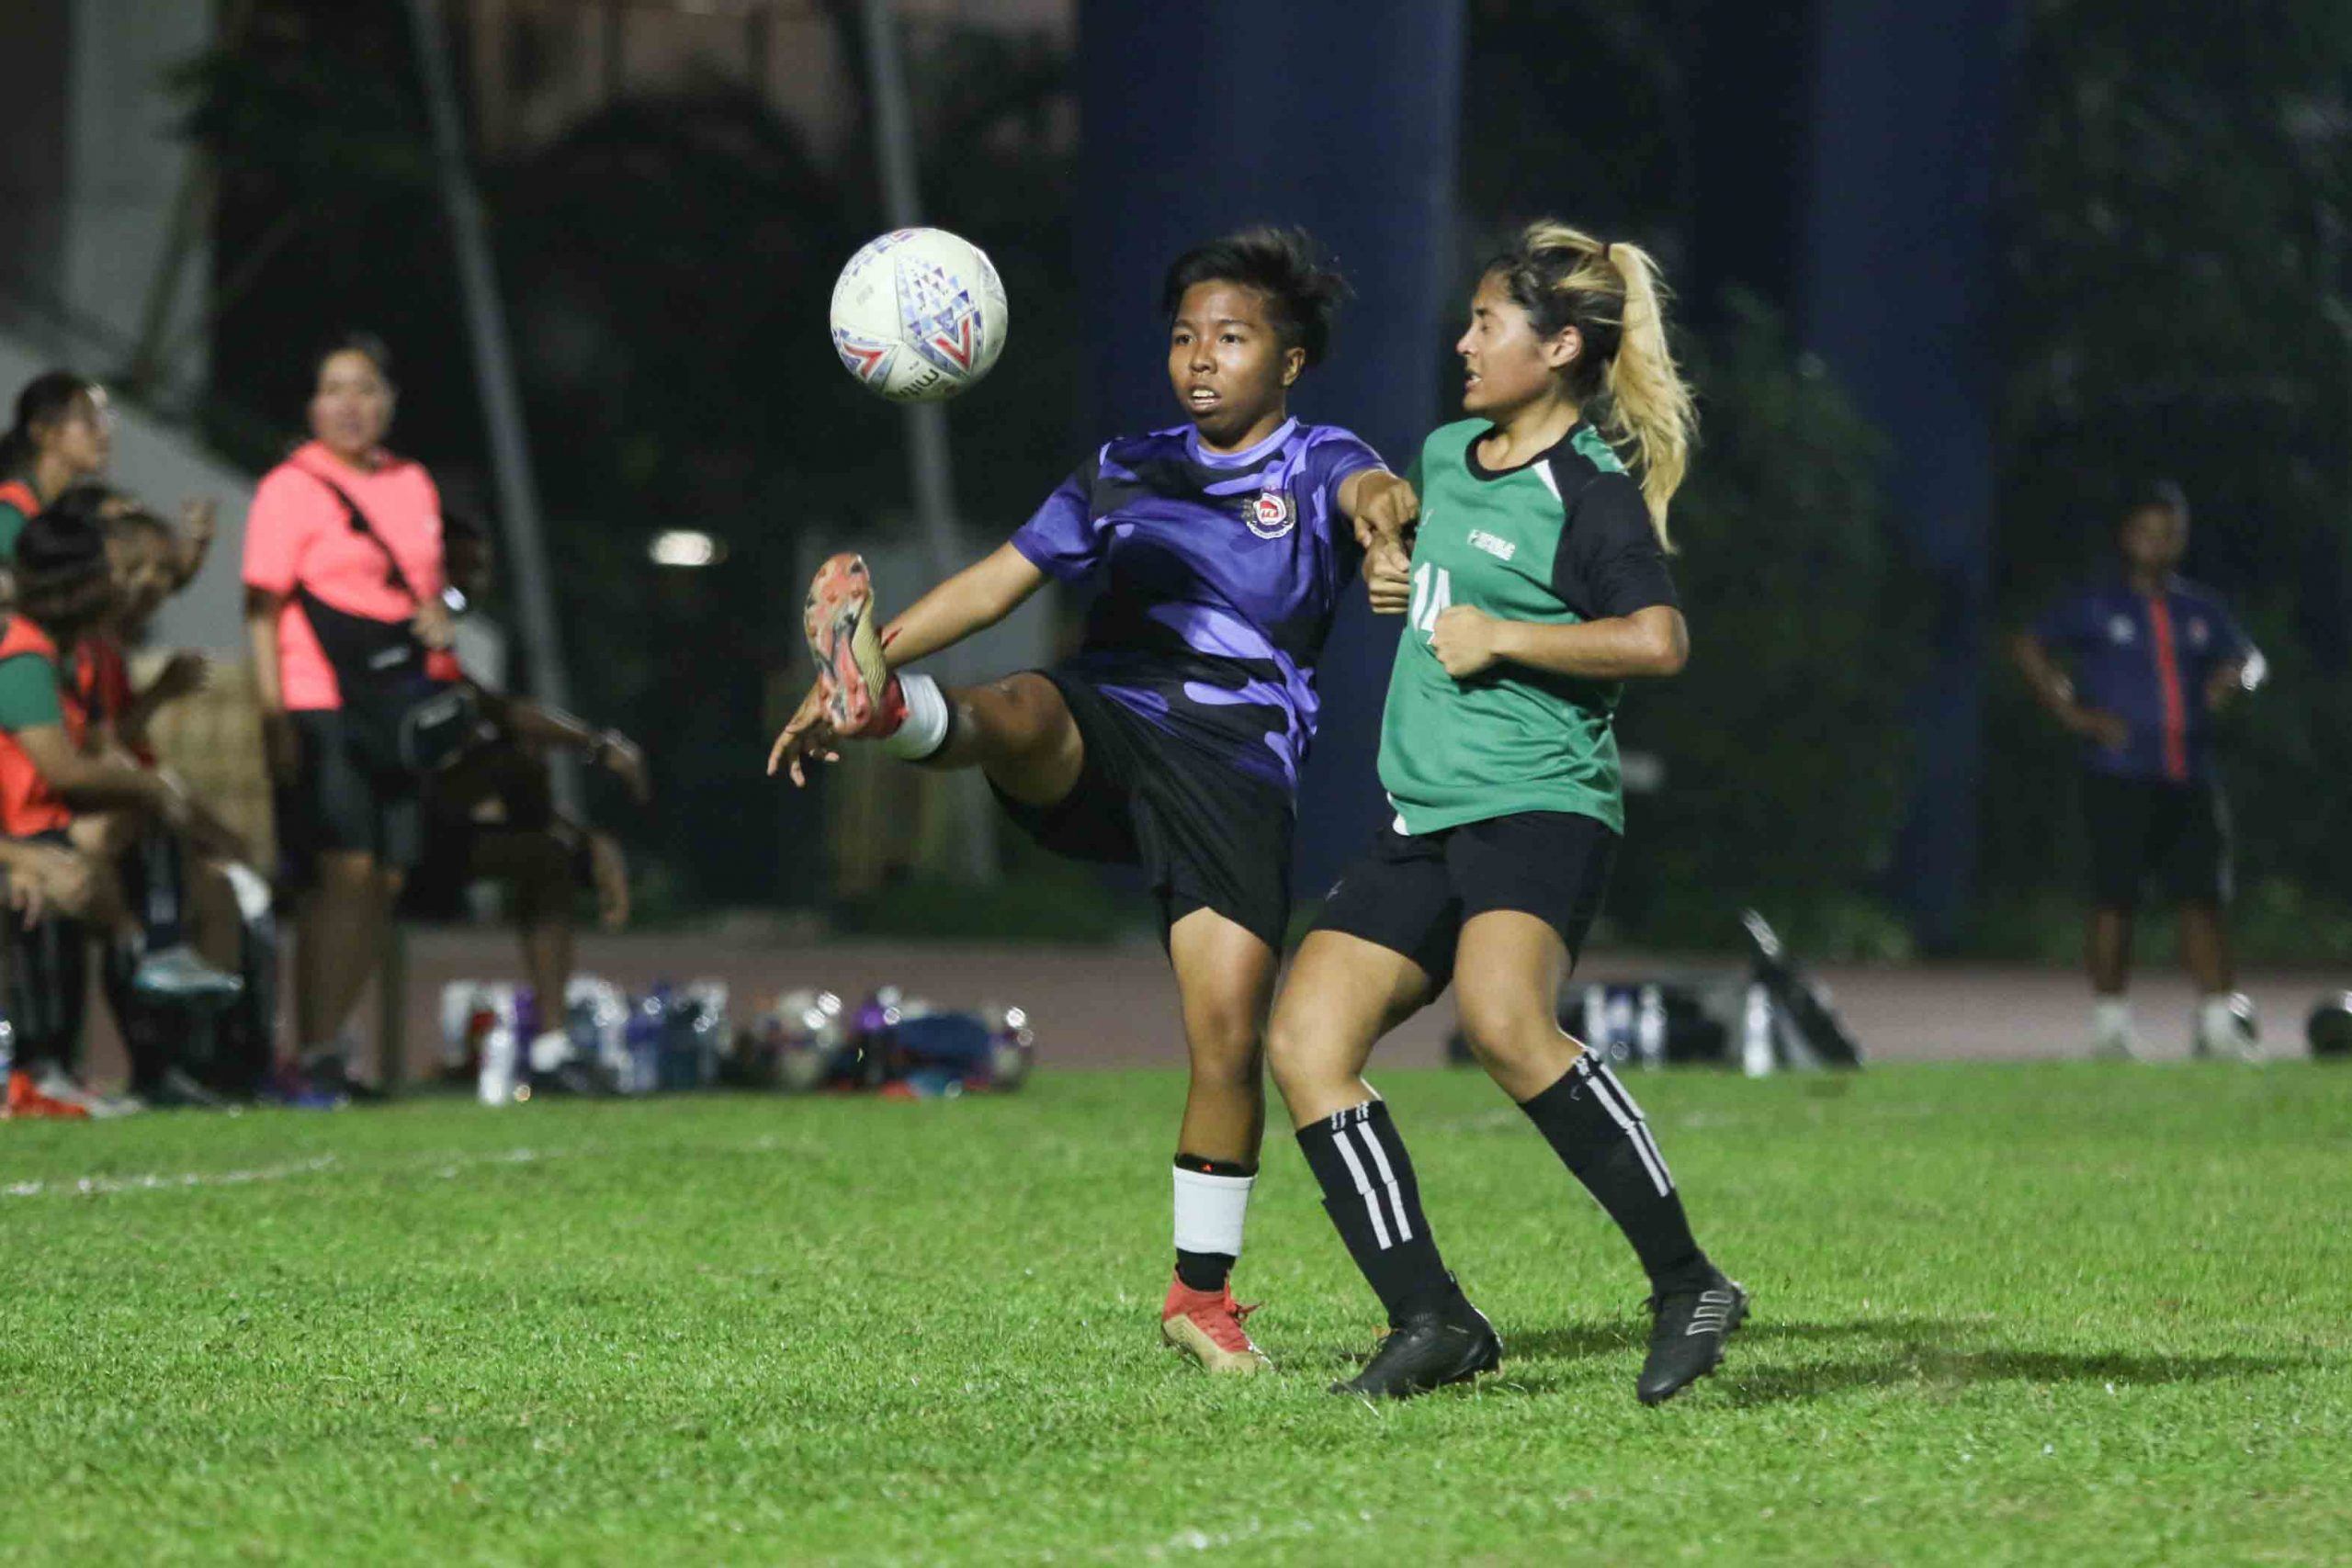 Seri Nurhidayah (ITE #10) keeps her eyes on the ball despite oncoming pressure from Danica Darshini (RP #14). (Photo 4 © Clara Lau/Red Sports)